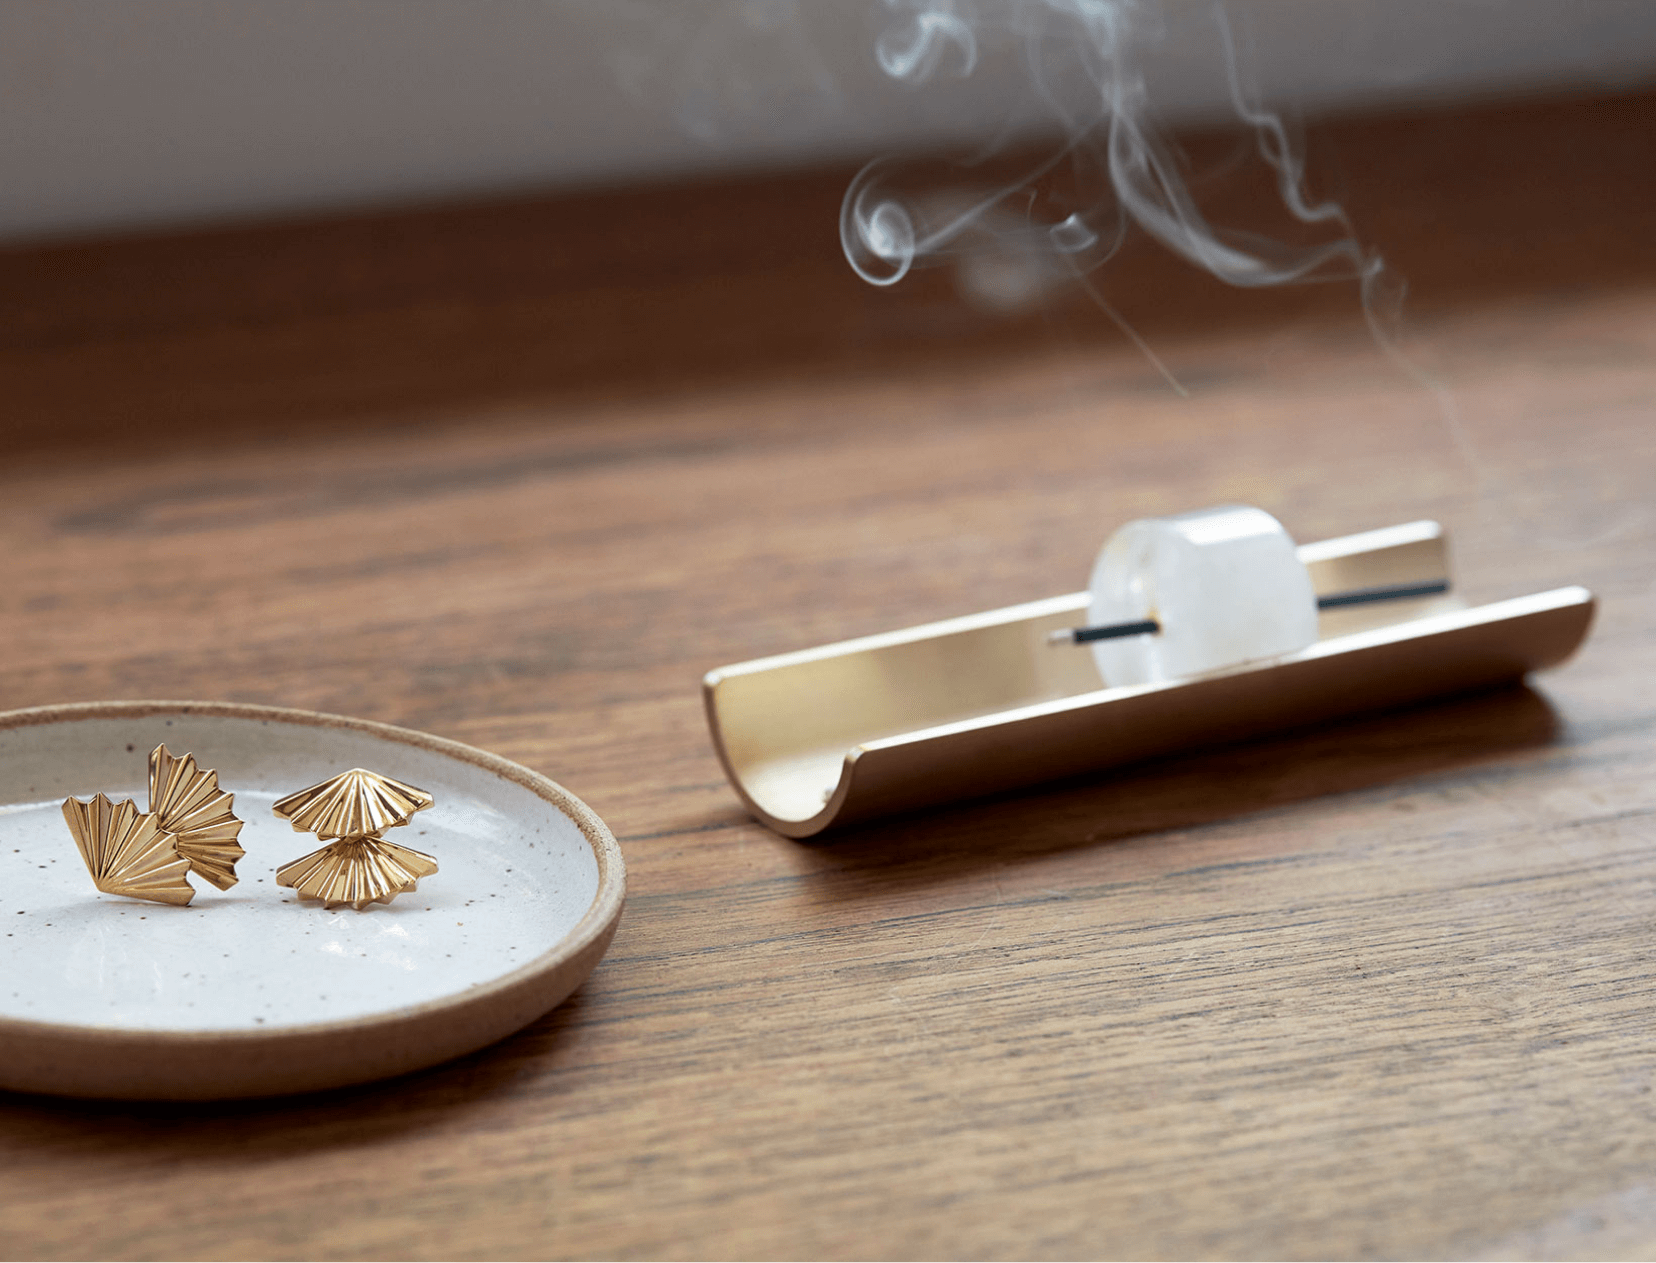 Incense burning on a table